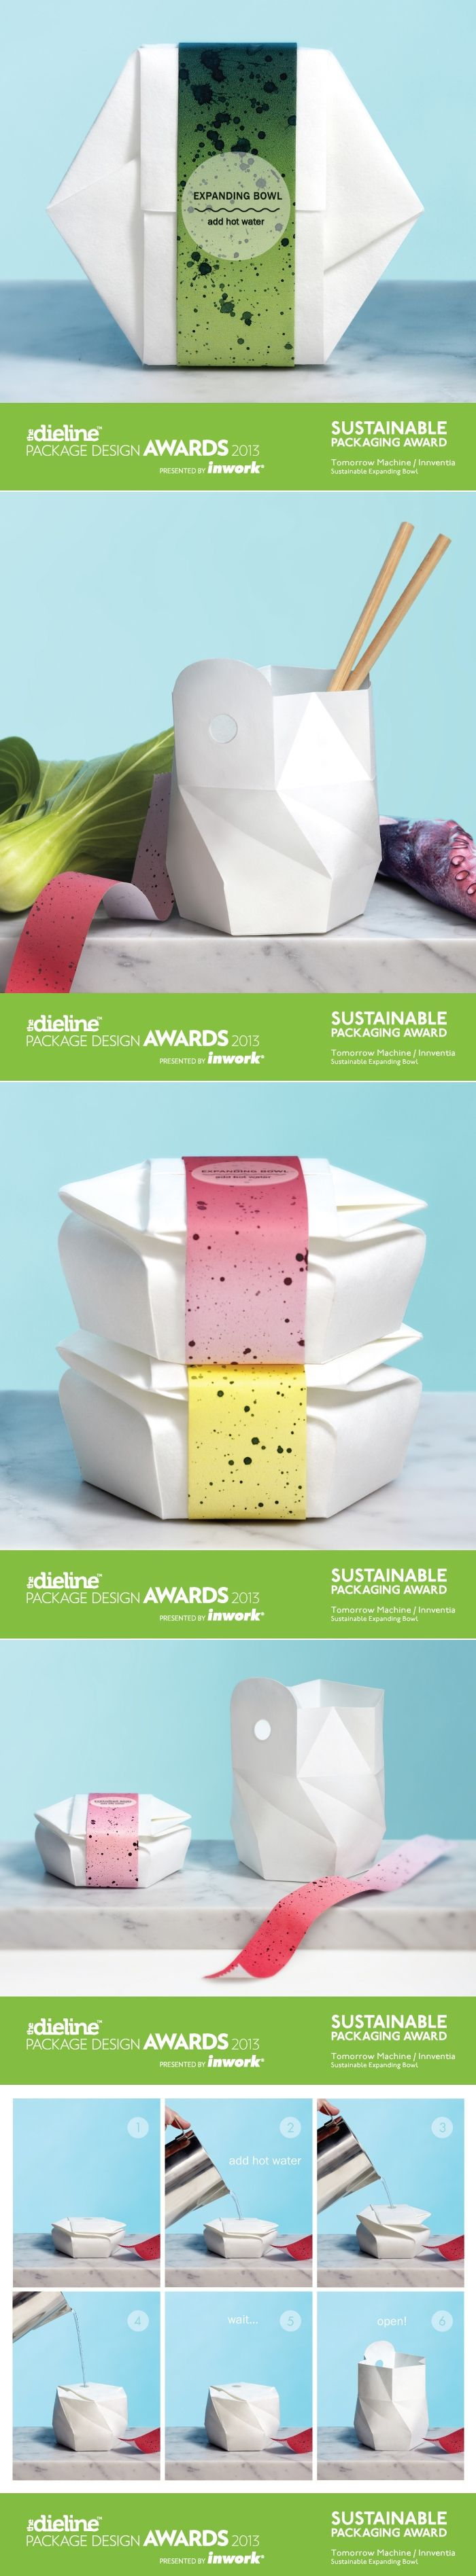 The Dieline Package Design Awards 2013: Sustainable Packaging Award - Sustainable Expandable Bowl — The Dieline | Packaging & Branding Design